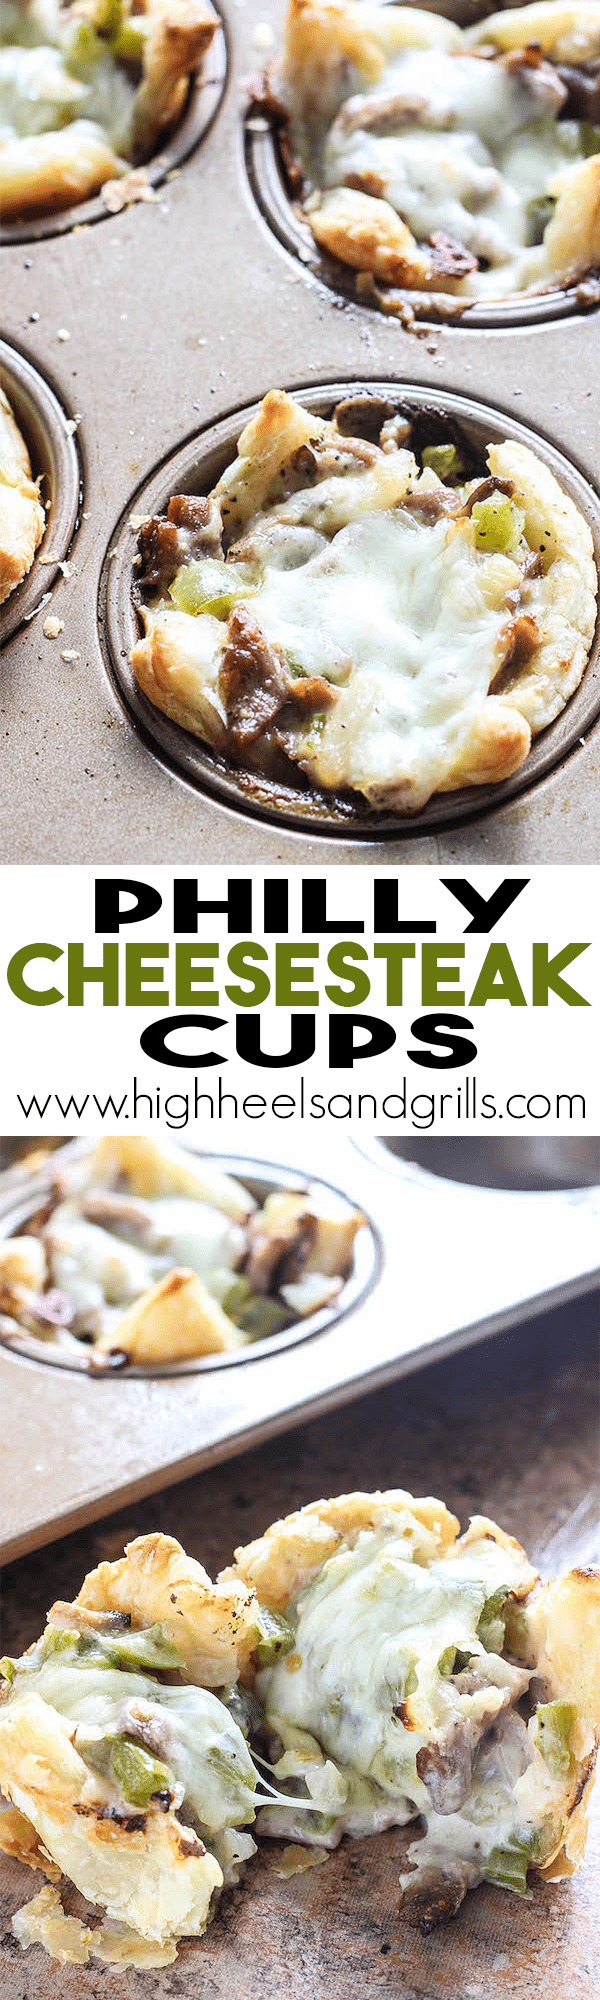 Philly Cheesesteak Cups - An easy dinner recipe that tastes so good! https://www.highheelsandgrills.com/philly-cheesesteak-cups/ 